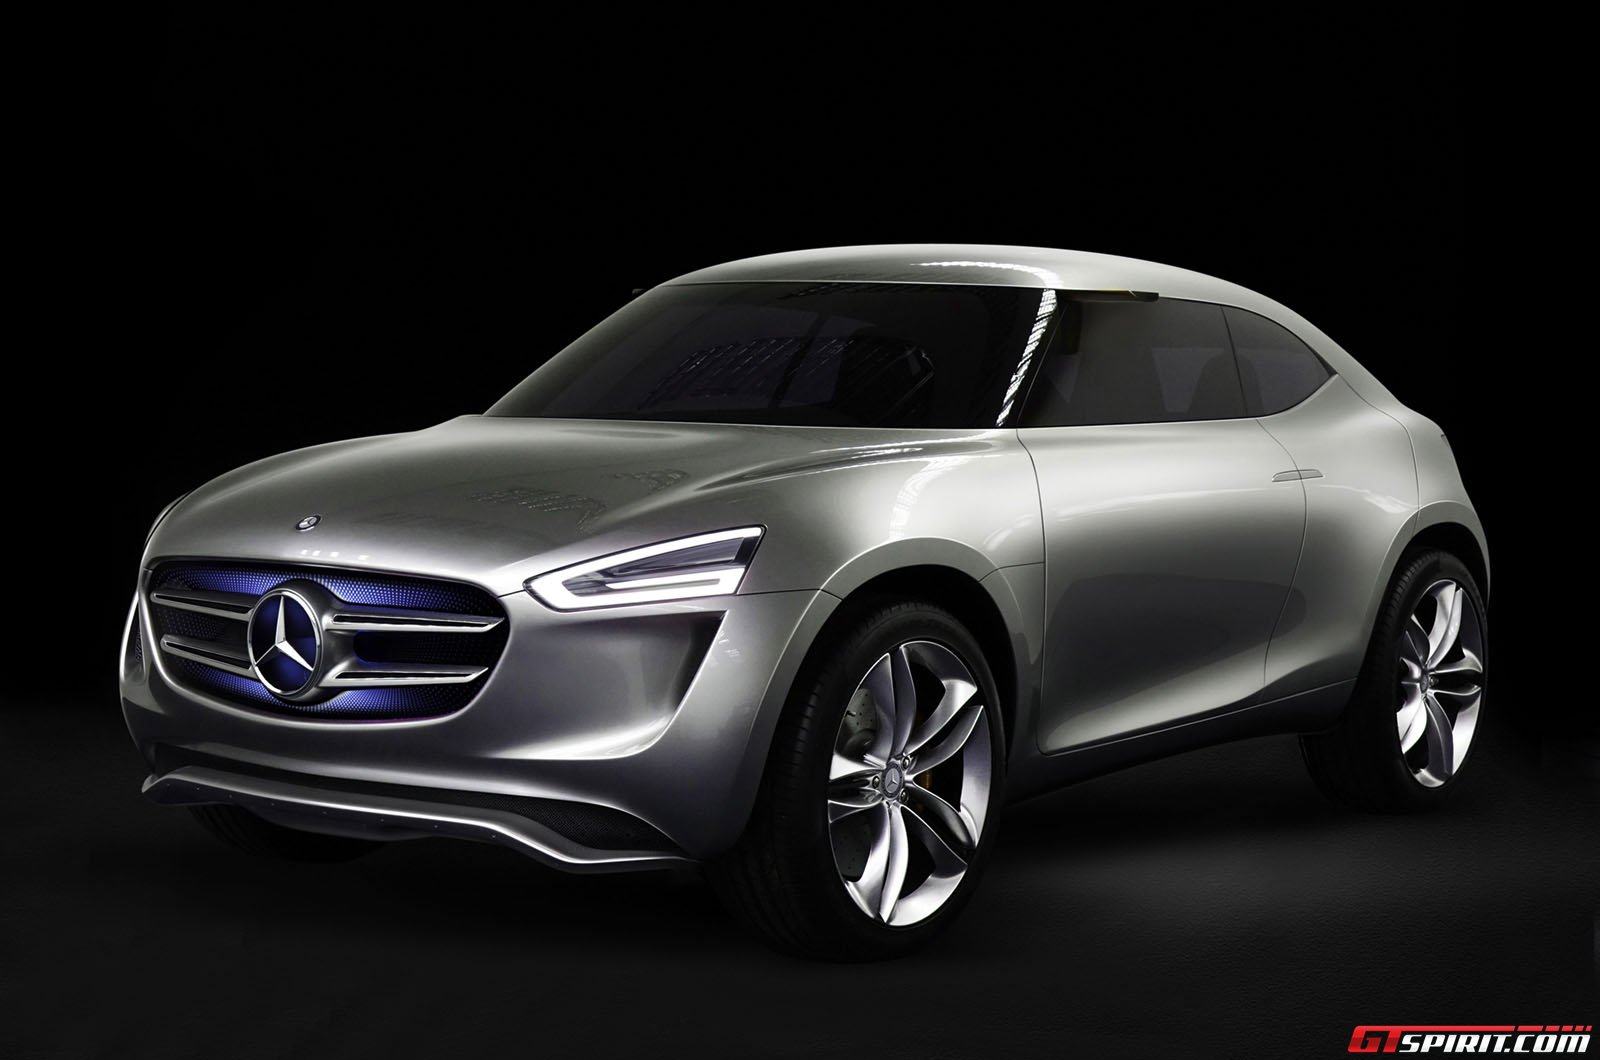 12 new mercedes benz models to be launched by 2020 gtspirit. Cars Review. Best American Auto & Cars Review